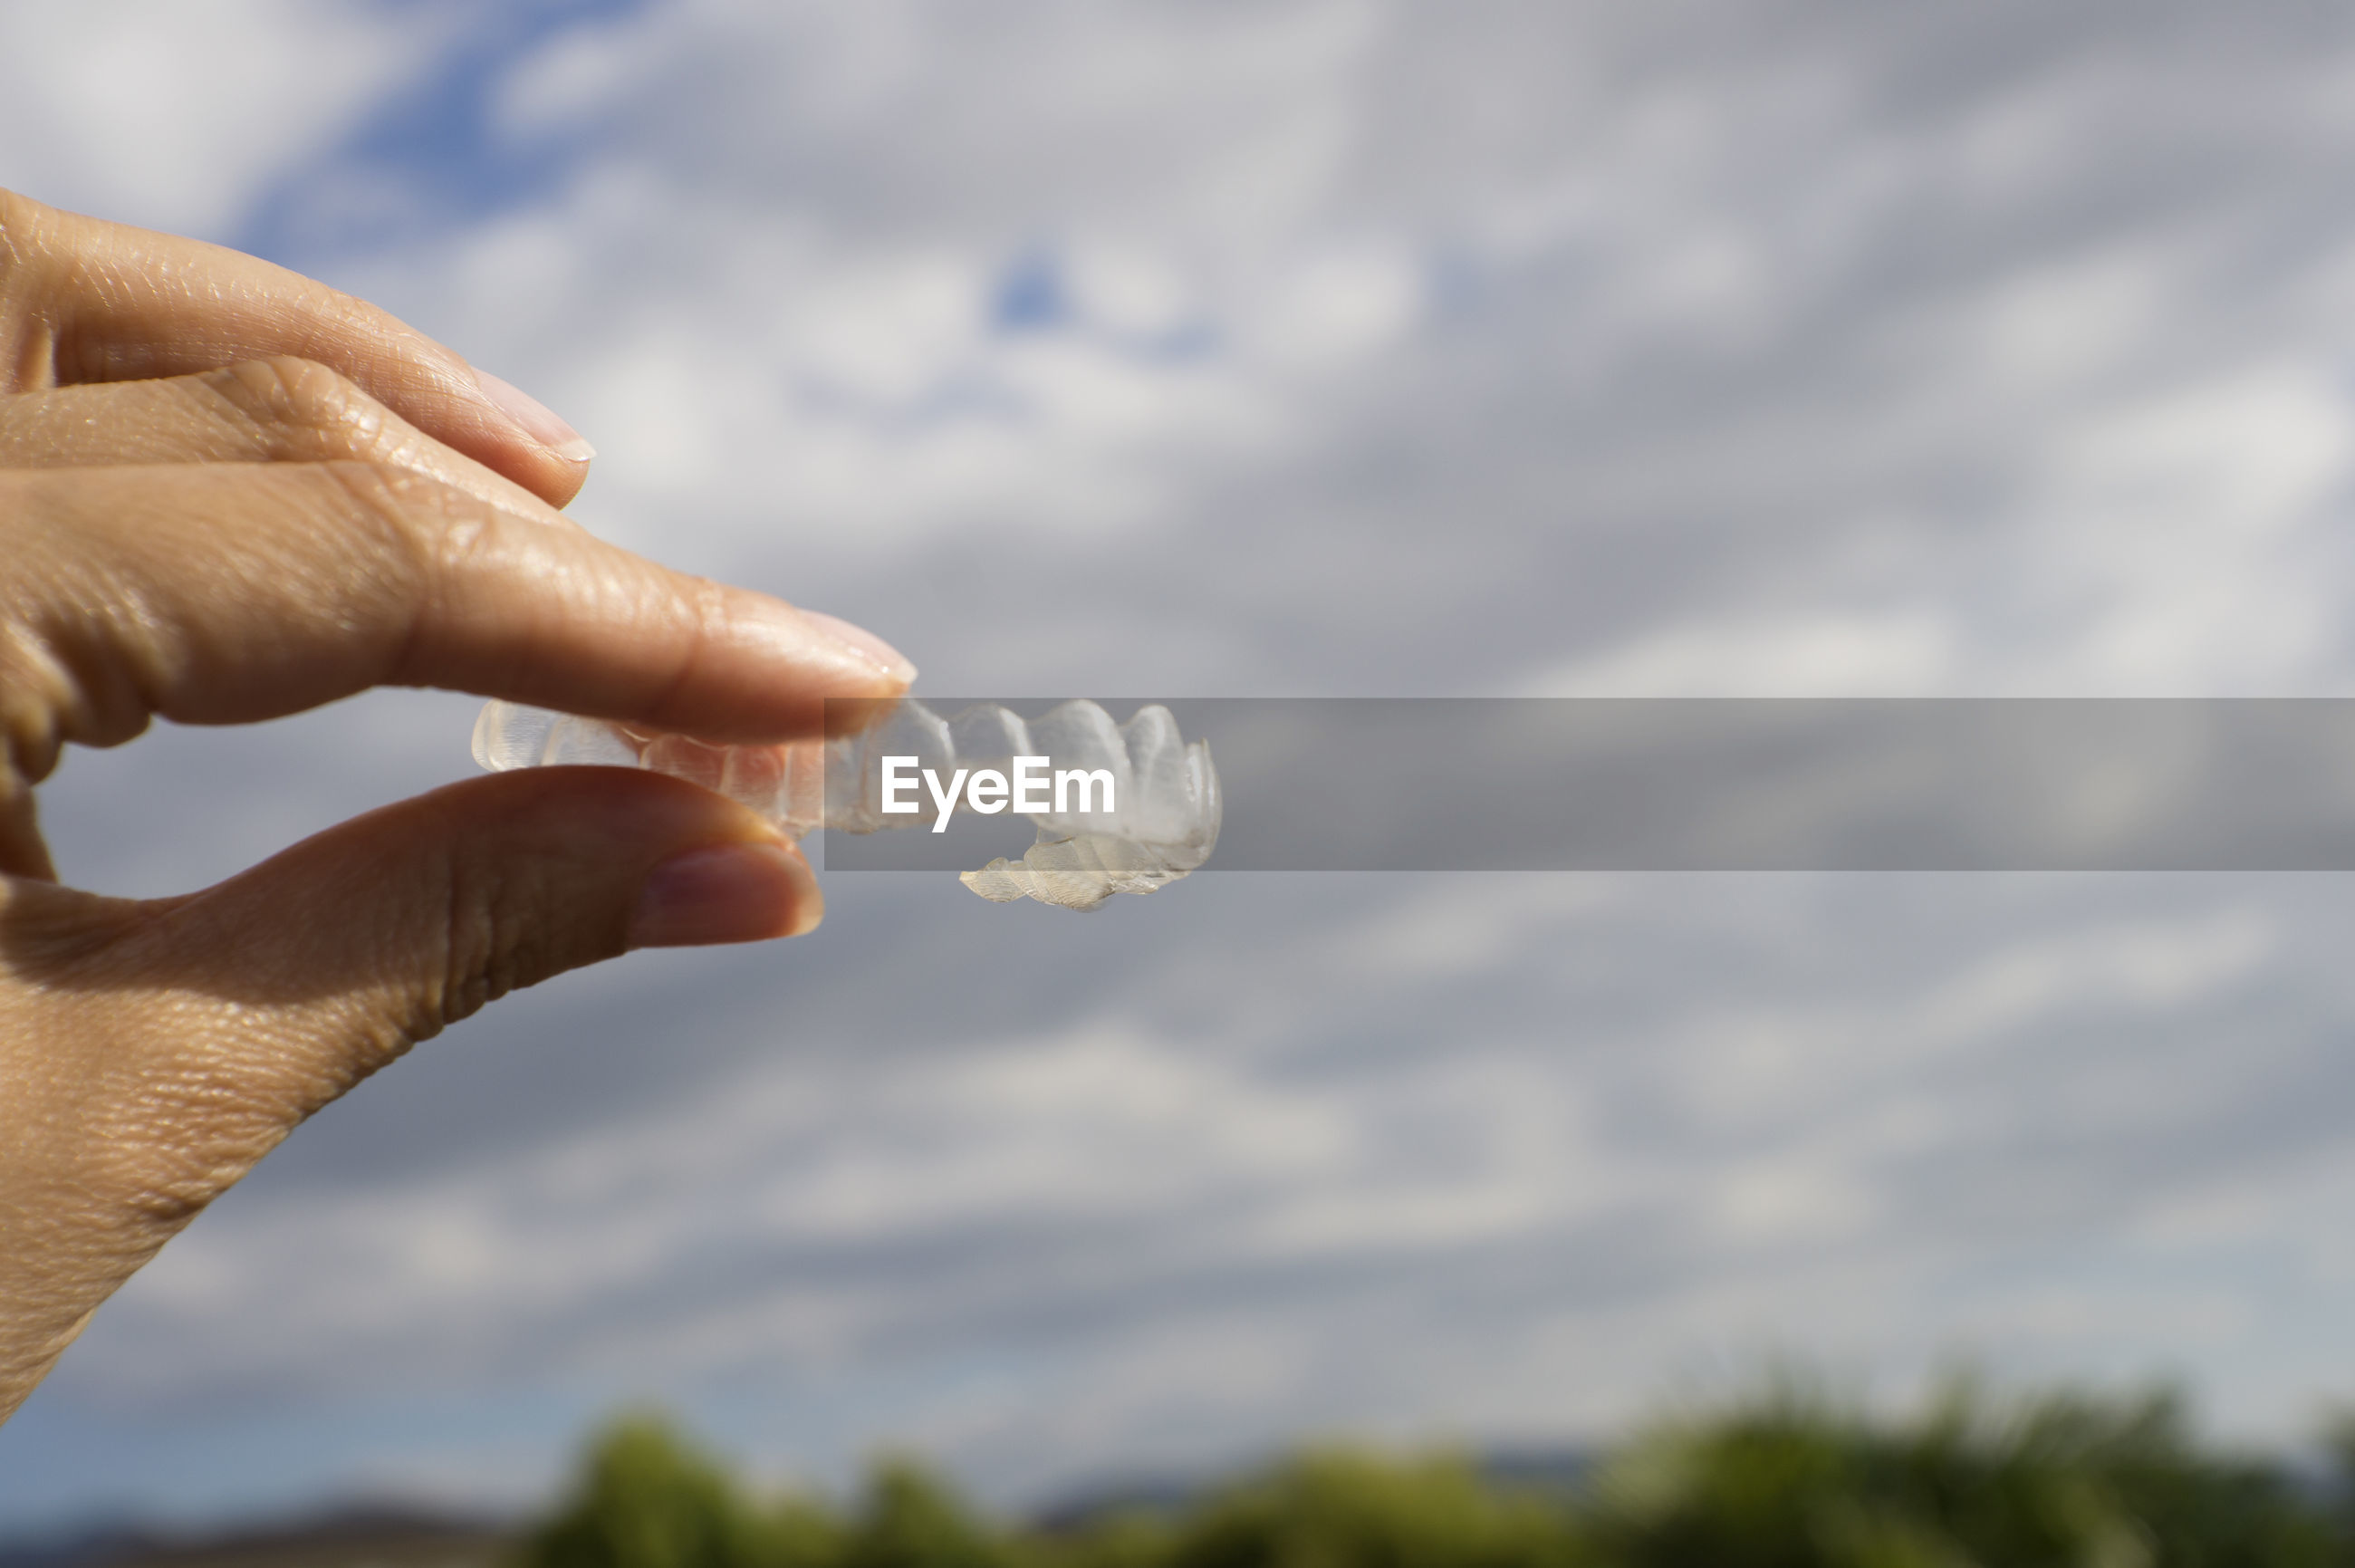 Cropped hands of person holding dentures against sky